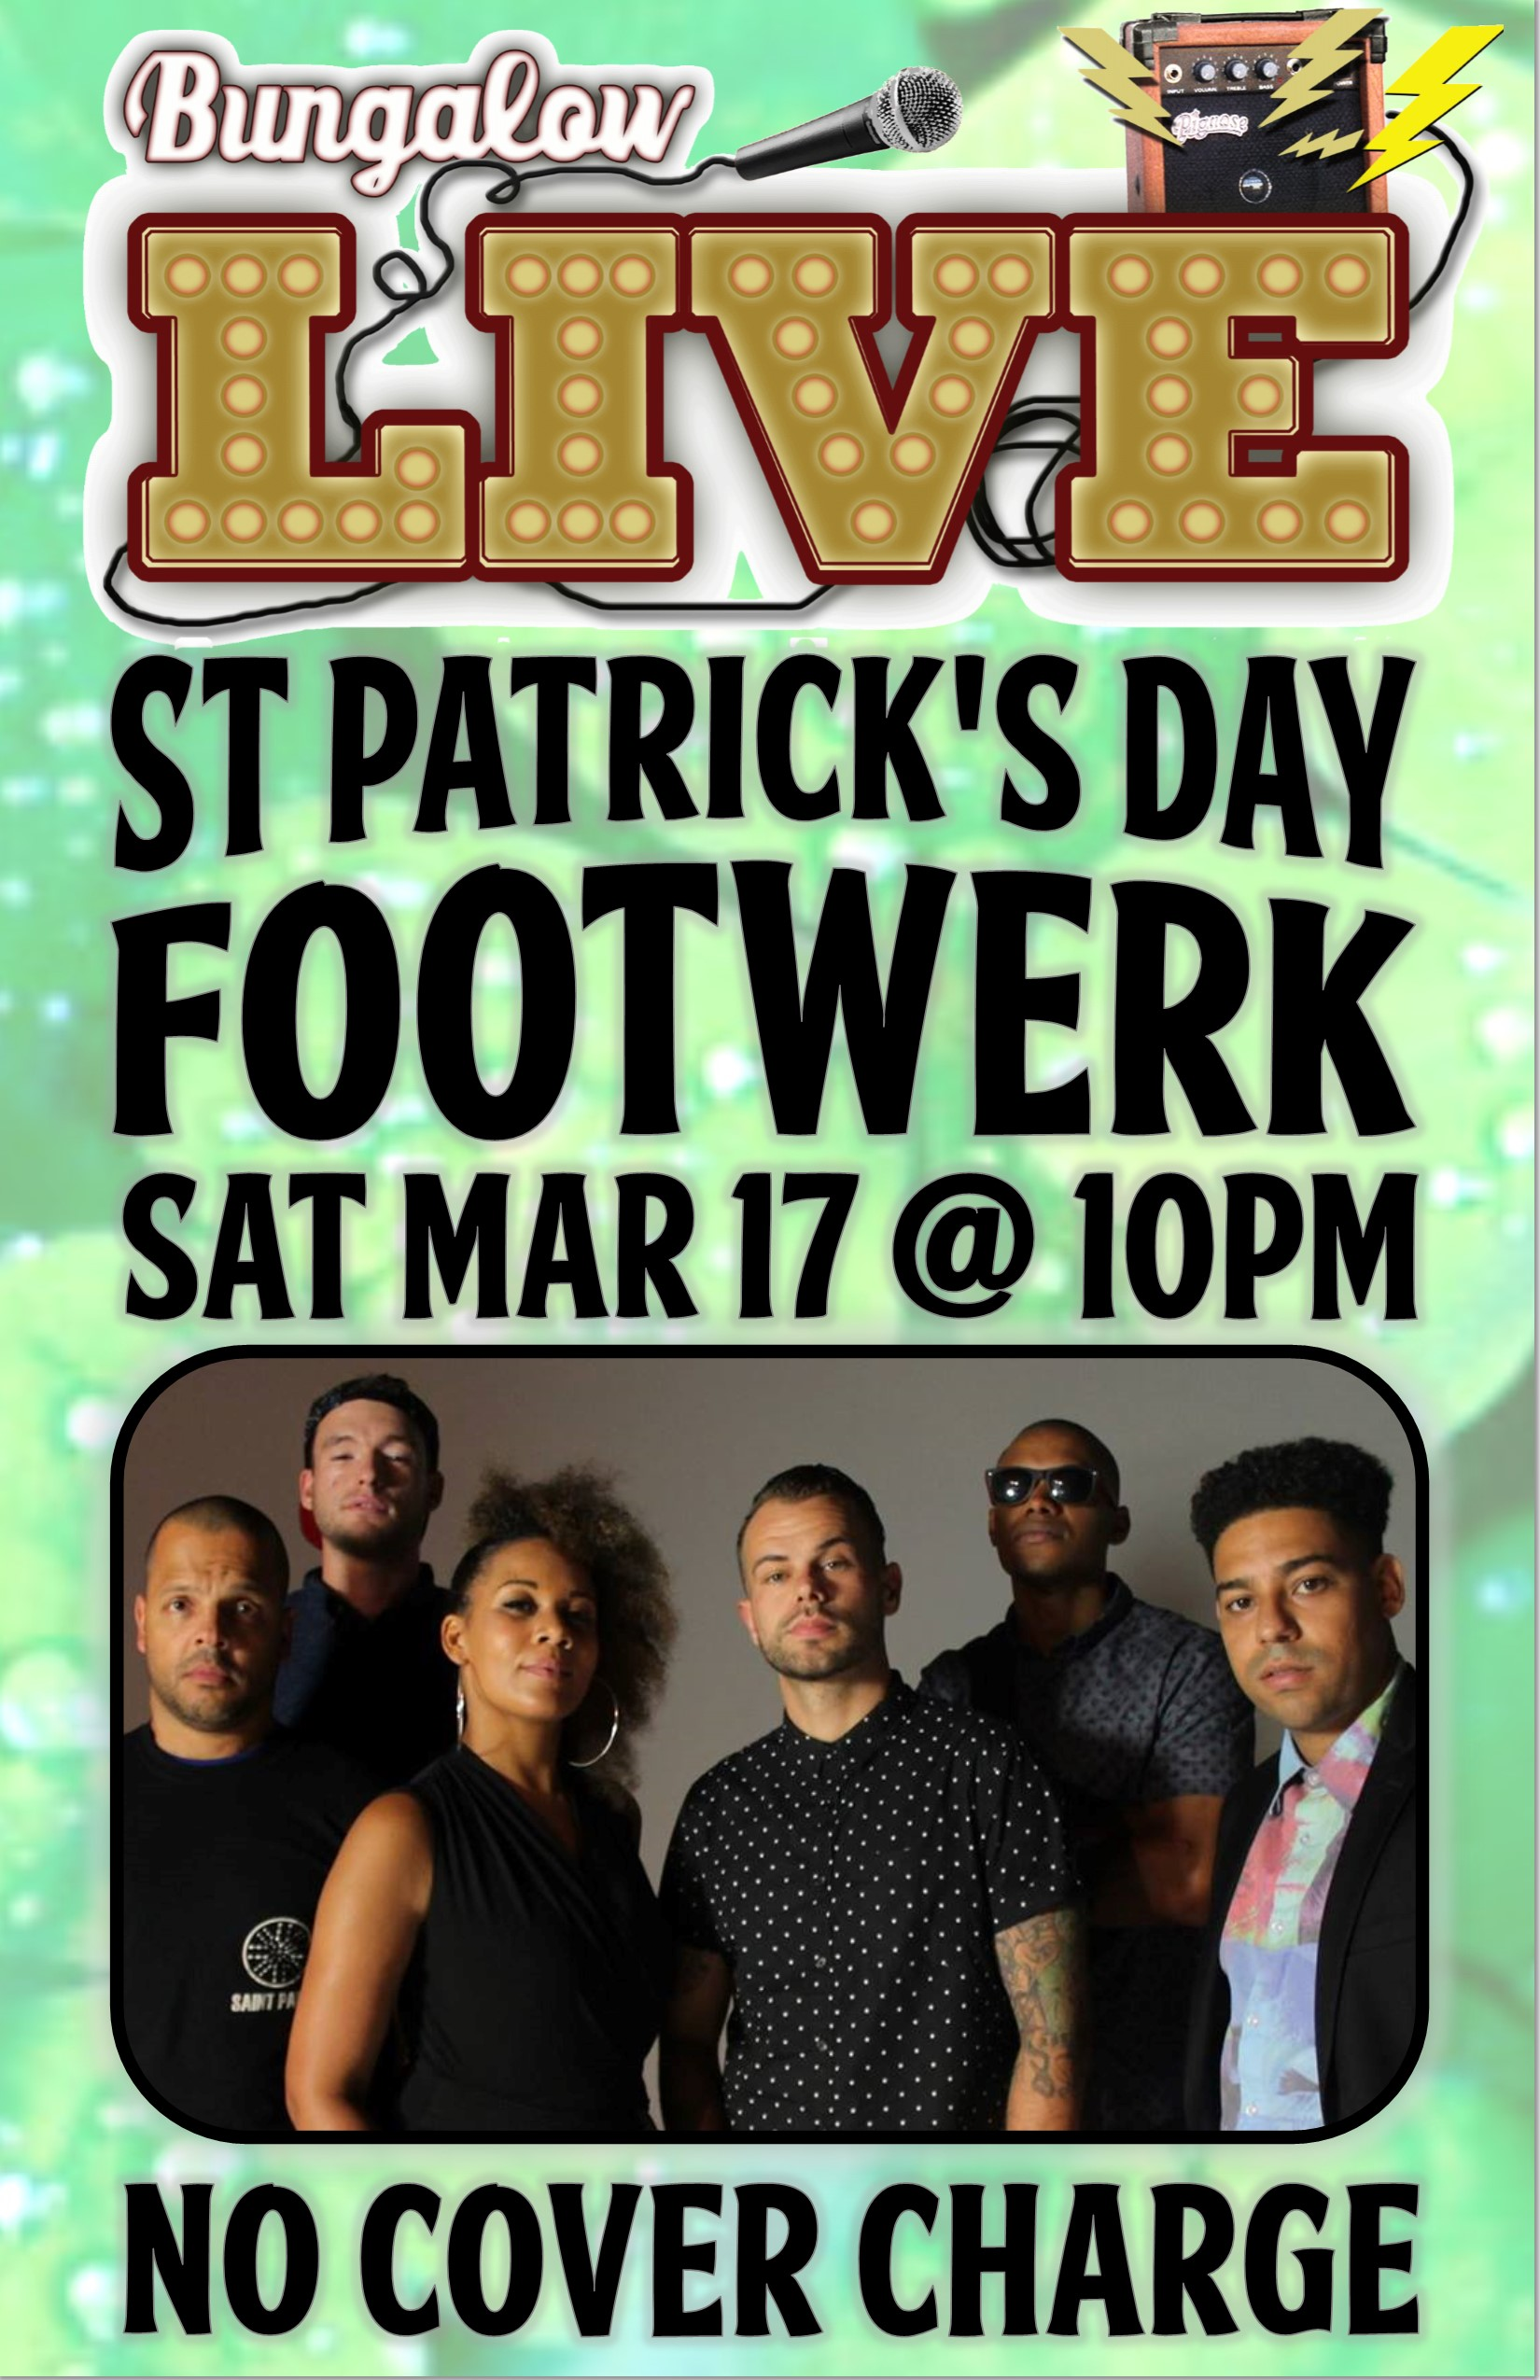 Footwerk St Patricks Day